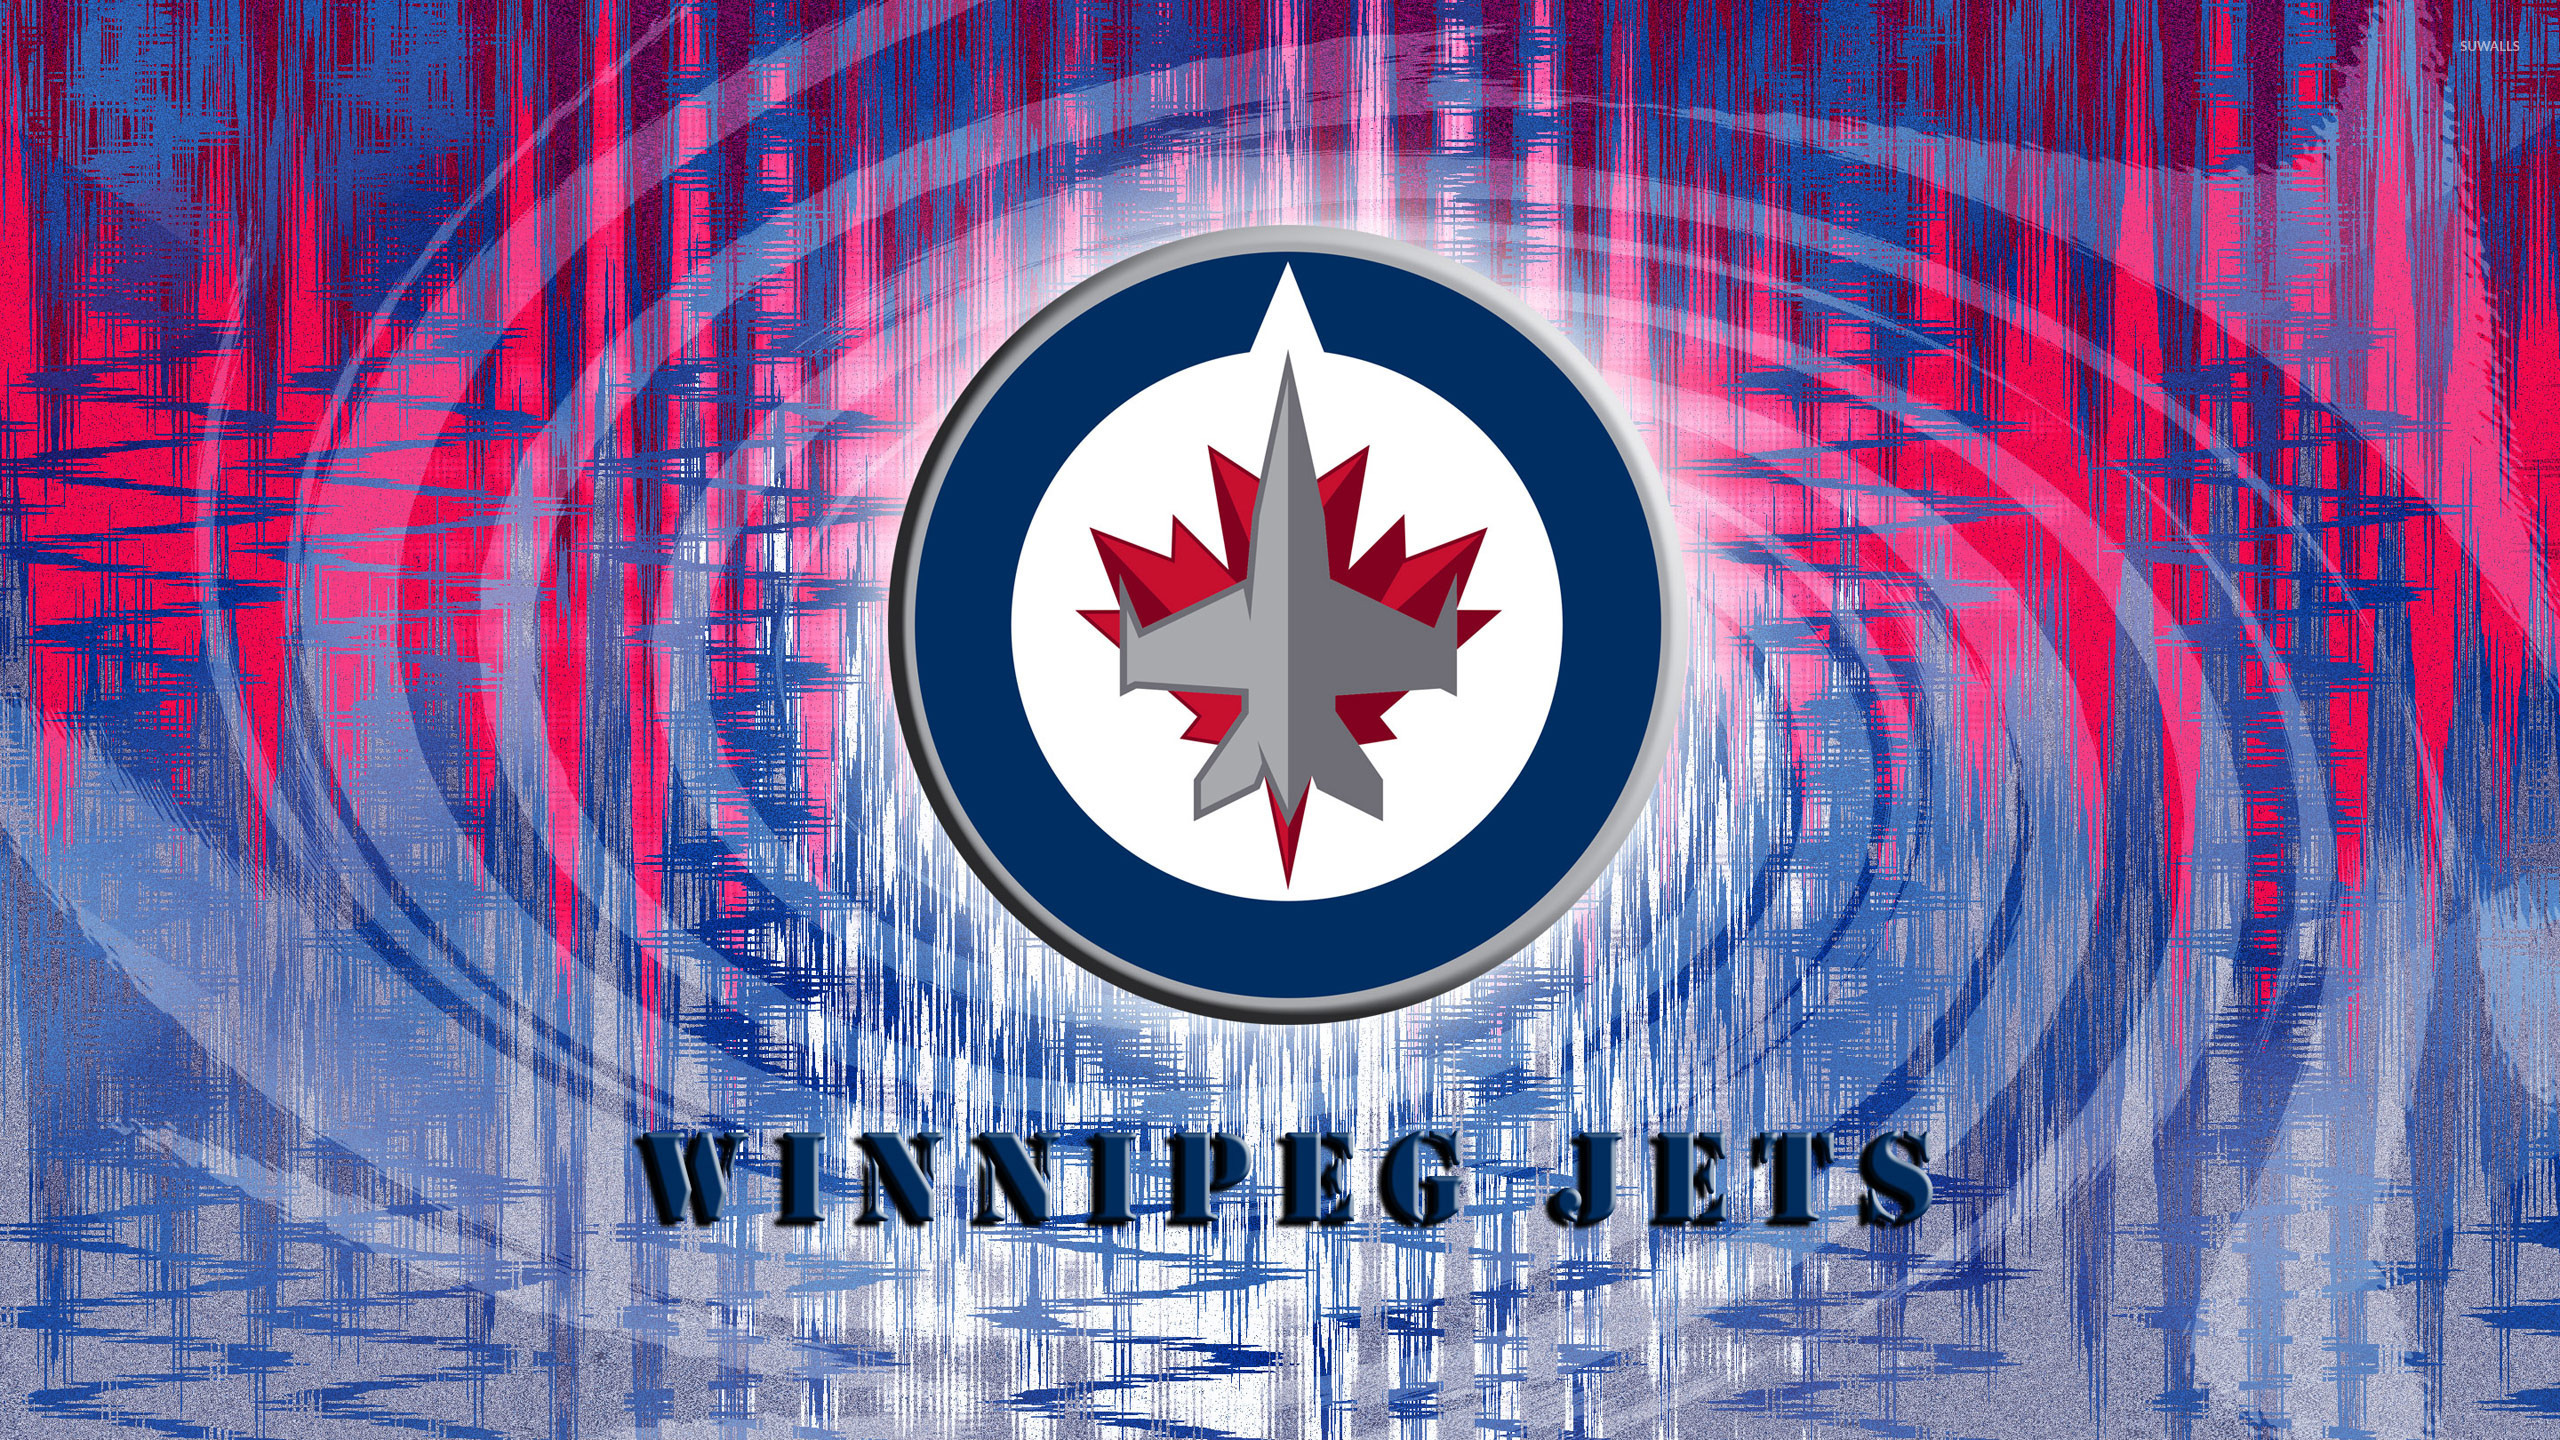 Winnipeg Jets wallpaper   Sport wallpapers   19508 2560x1440